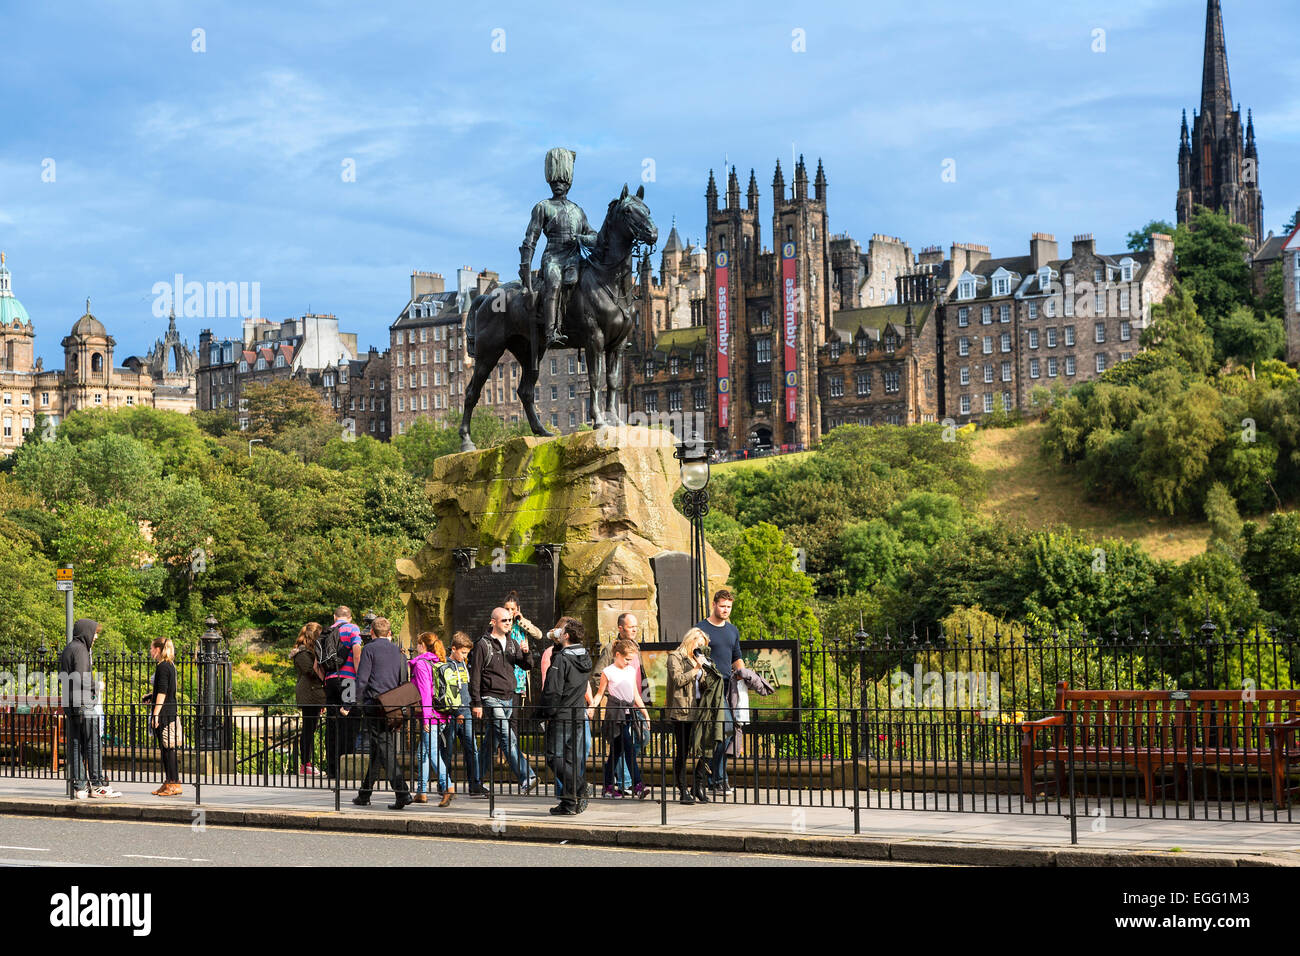 the Royal Scots Greys monument on Princes Street - Stock Image